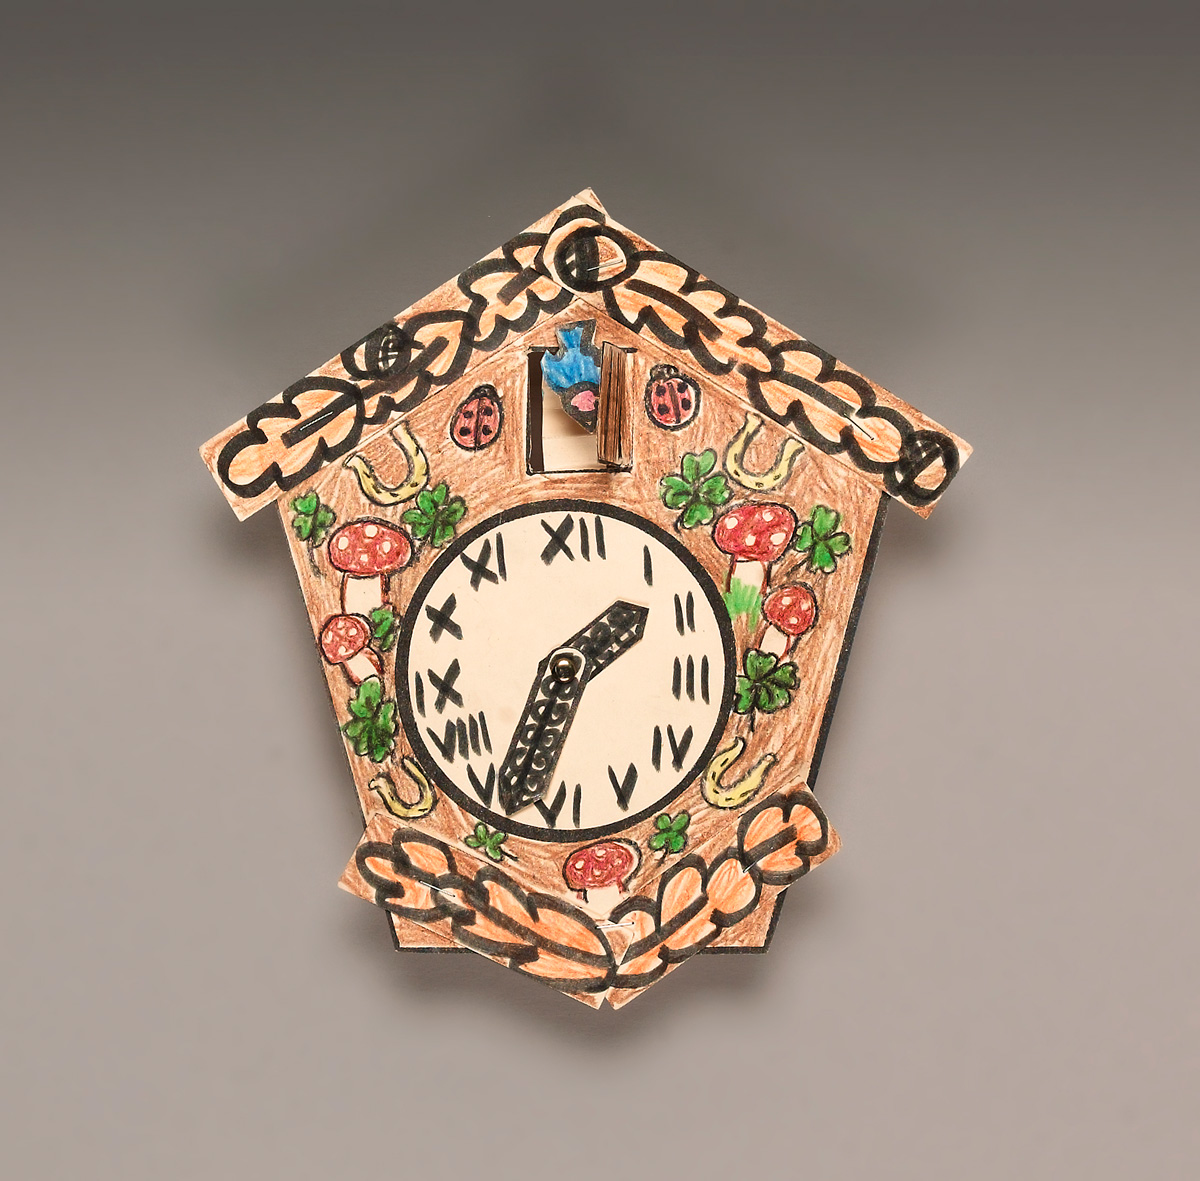 family heirloom cuckoo clock crayola coloring watercolor and salt art set for kids light coloring pages Cuckoo Clock Coloring Page